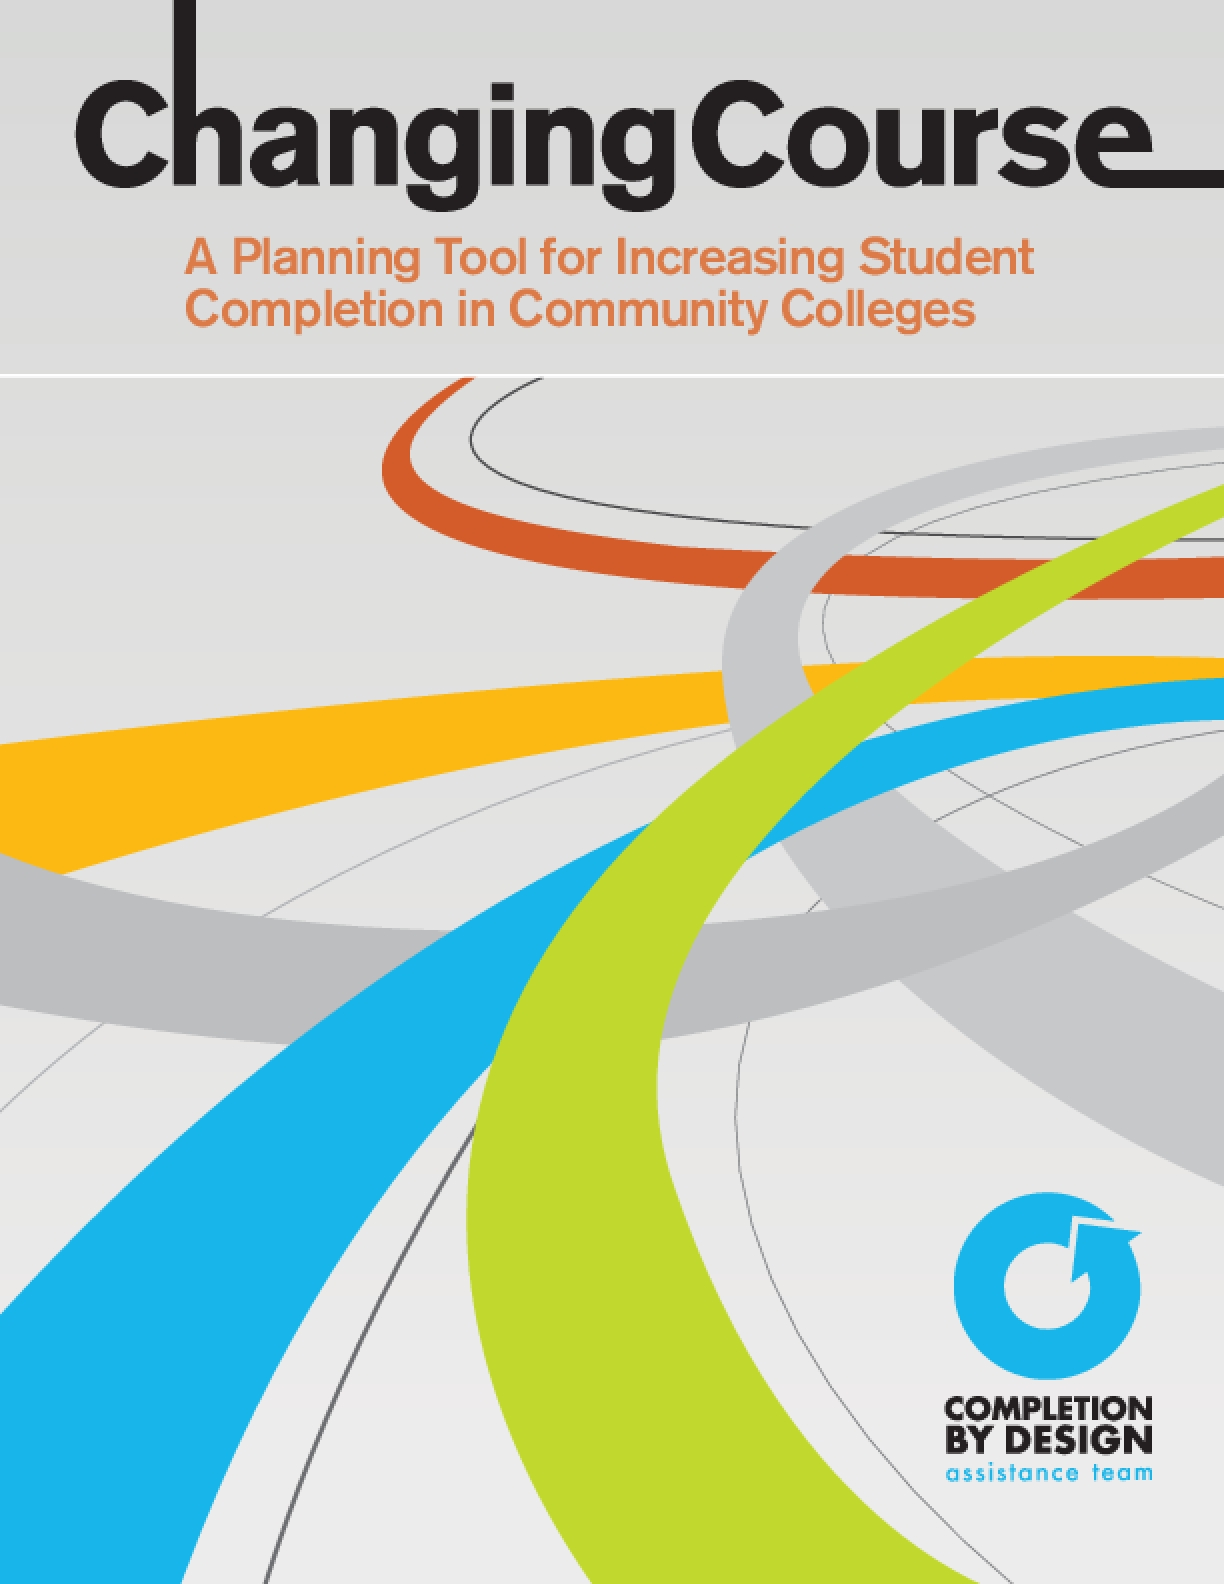 Changing Course: A Planning Tool to Increasing Student Completion in Community Colleges